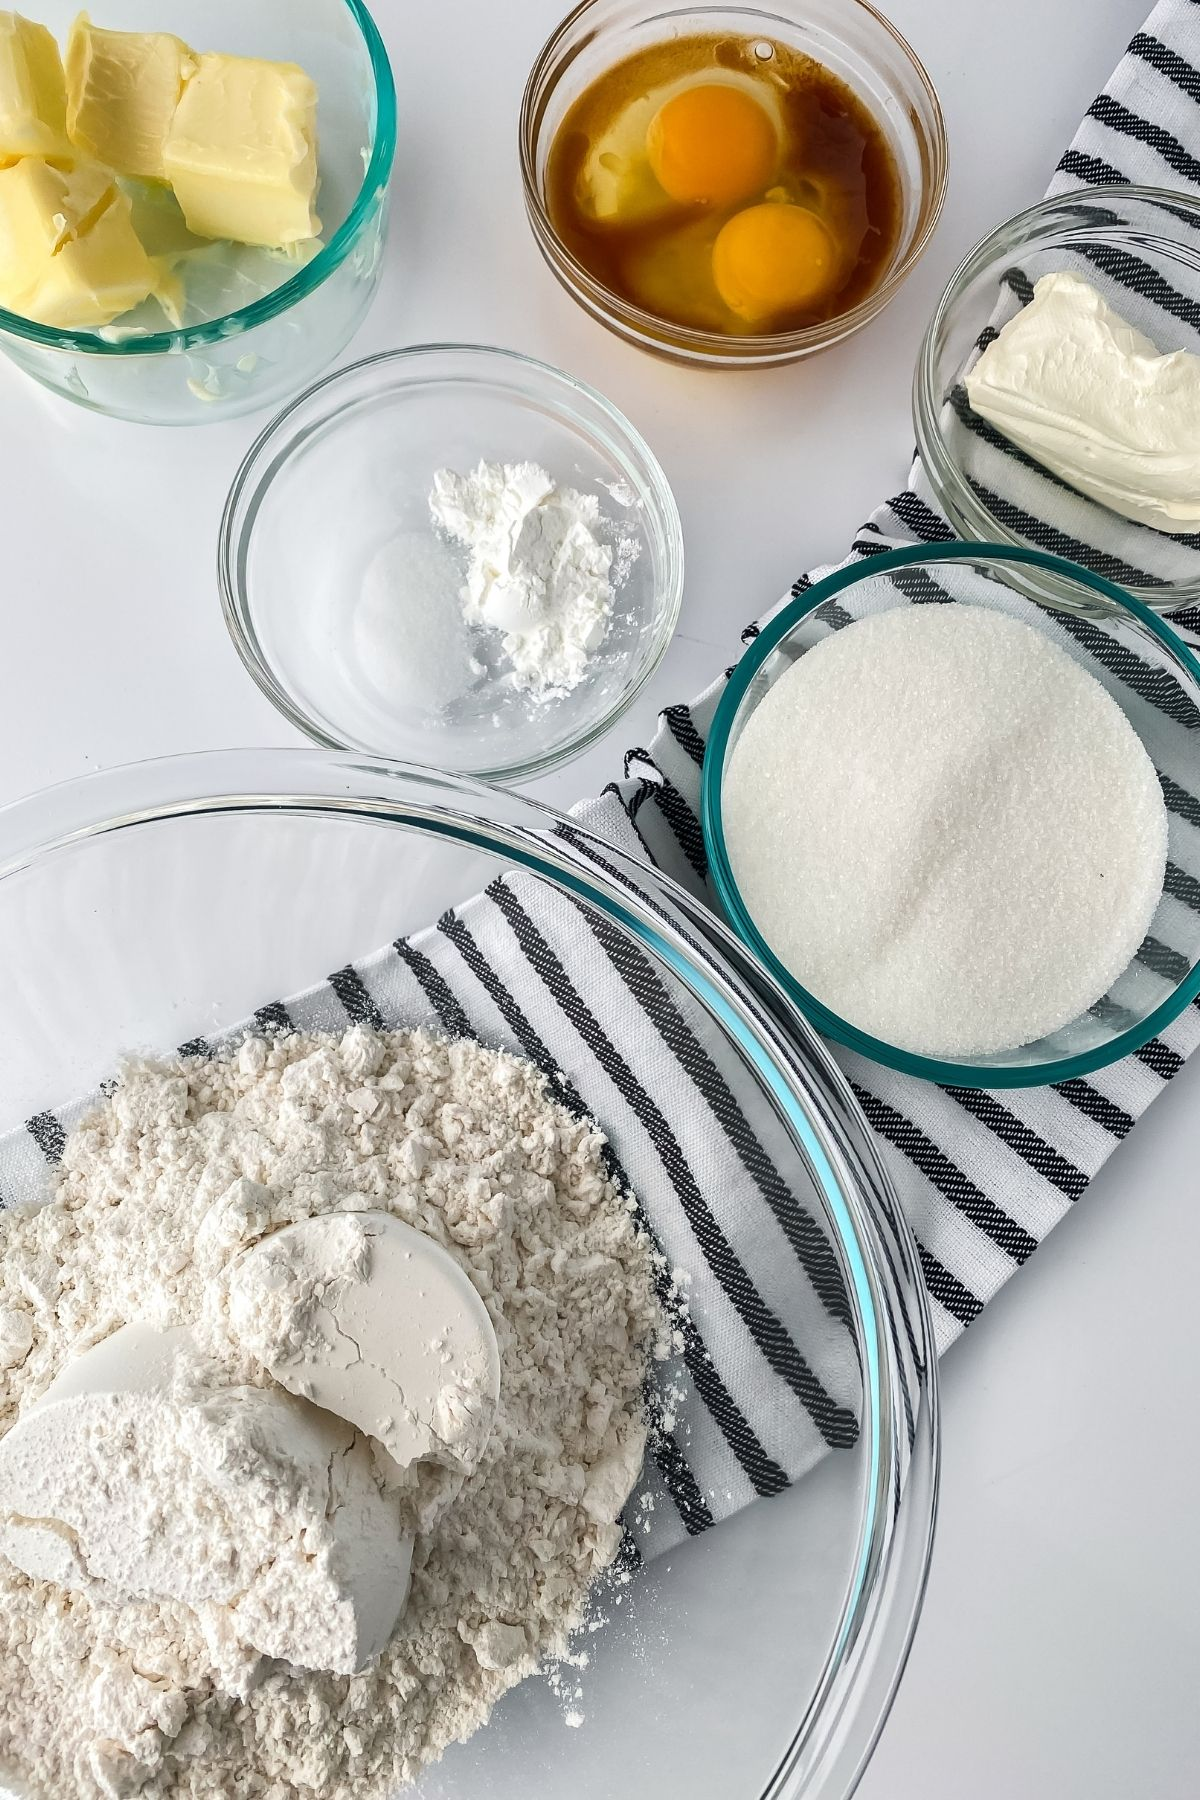 Ingredients for Lofthouse cookies in glass bowls on table